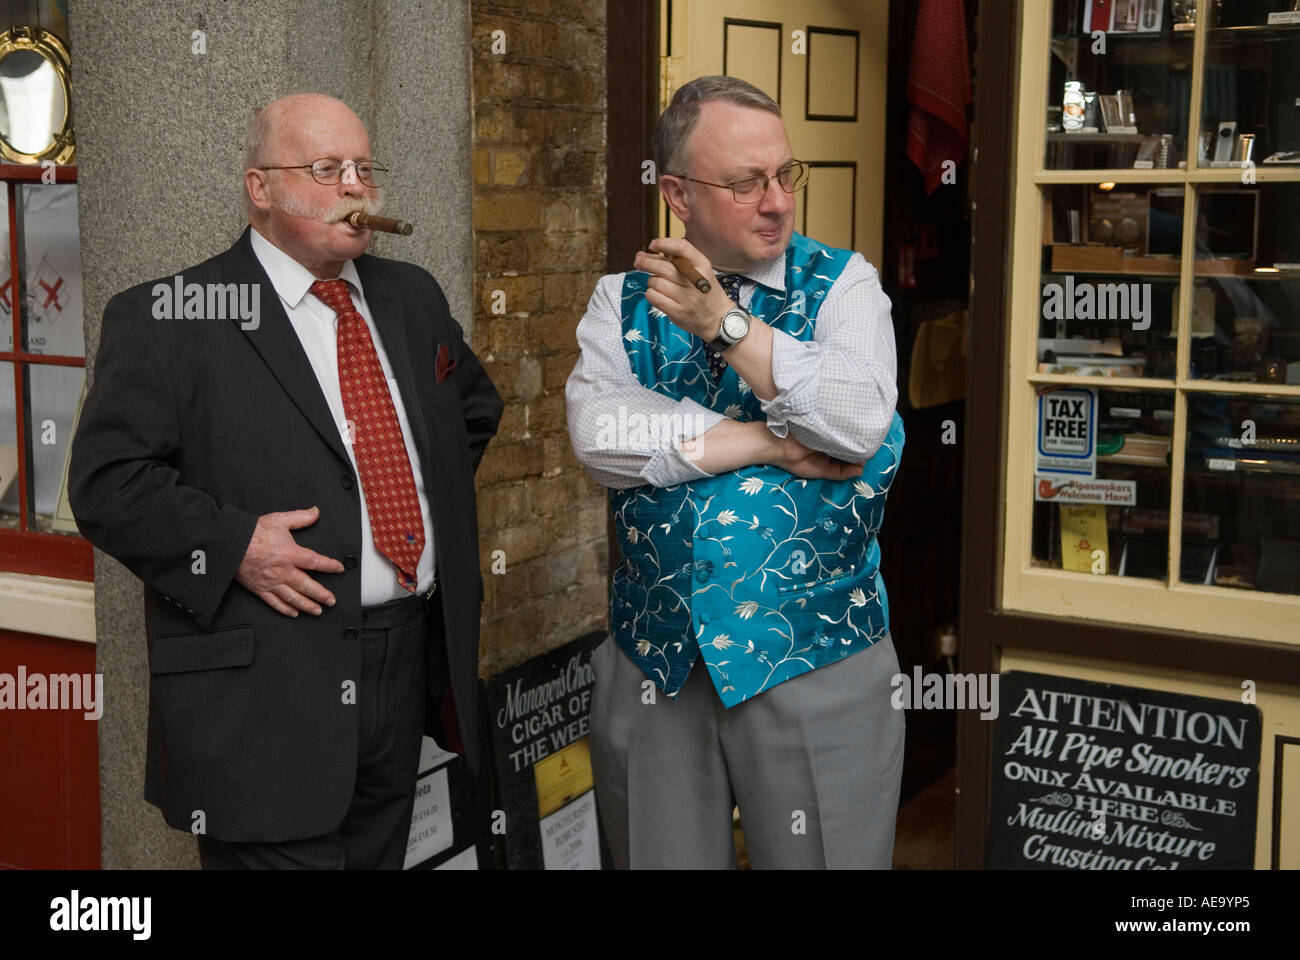 Personable Smokers London Stock Photos  Smokers London Stock Images  Alamy With Exciting Covent Garden West Central London England Two Male Cigar Smokers Outside A  Smoking Smokers Shop  With Easy On The Eye Funky Garden Gifts Also Vatican Garden Inn Rome Italy In Addition Cupar Garden Centre And Garden Angel As Well As Jamie Oliver London Restaurant Covent Garden Additionally Vertical Garden Accessories From Alamycom With   Exciting Smokers London Stock Photos  Smokers London Stock Images  Alamy With Easy On The Eye Covent Garden West Central London England Two Male Cigar Smokers Outside A  Smoking Smokers Shop  And Personable Funky Garden Gifts Also Vatican Garden Inn Rome Italy In Addition Cupar Garden Centre From Alamycom